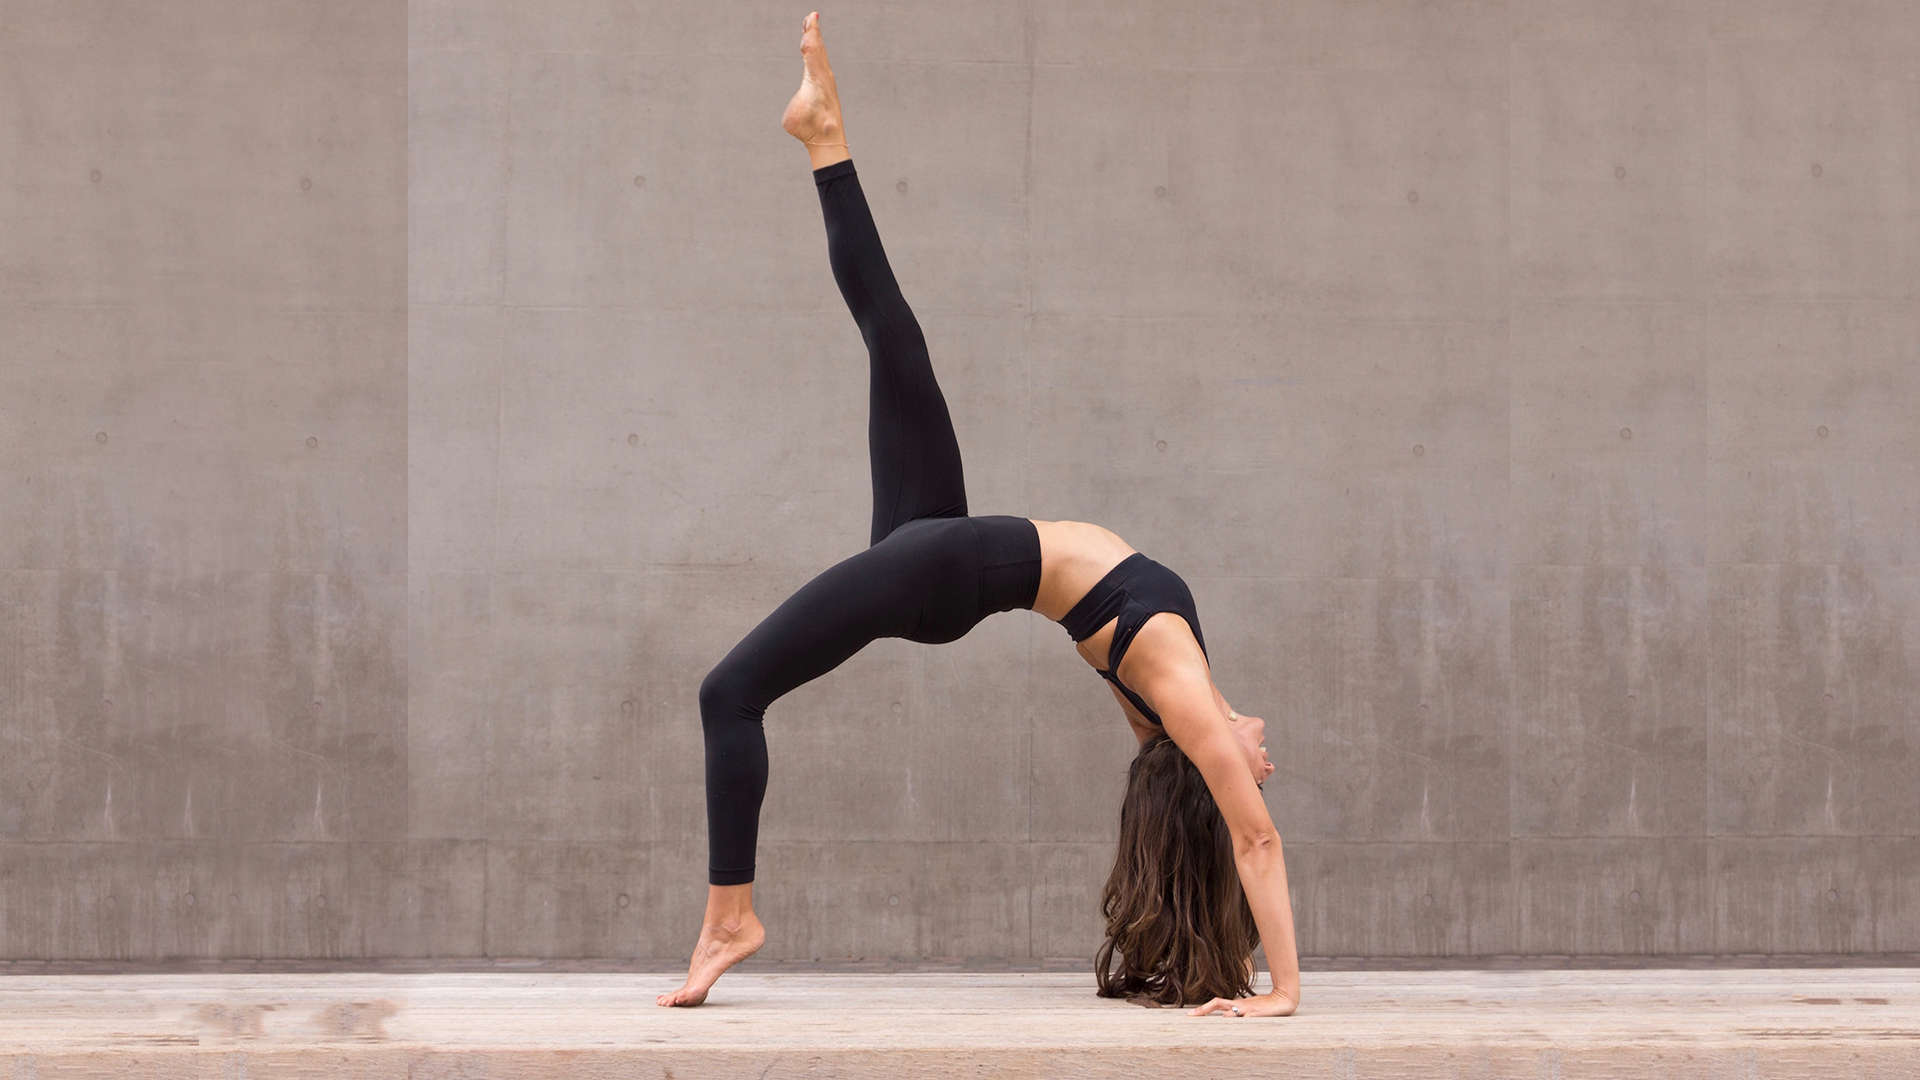 Best Yoga Workout For Beginners Get Stronger With A Pain Free Full Body Workout From A Top Pt T3